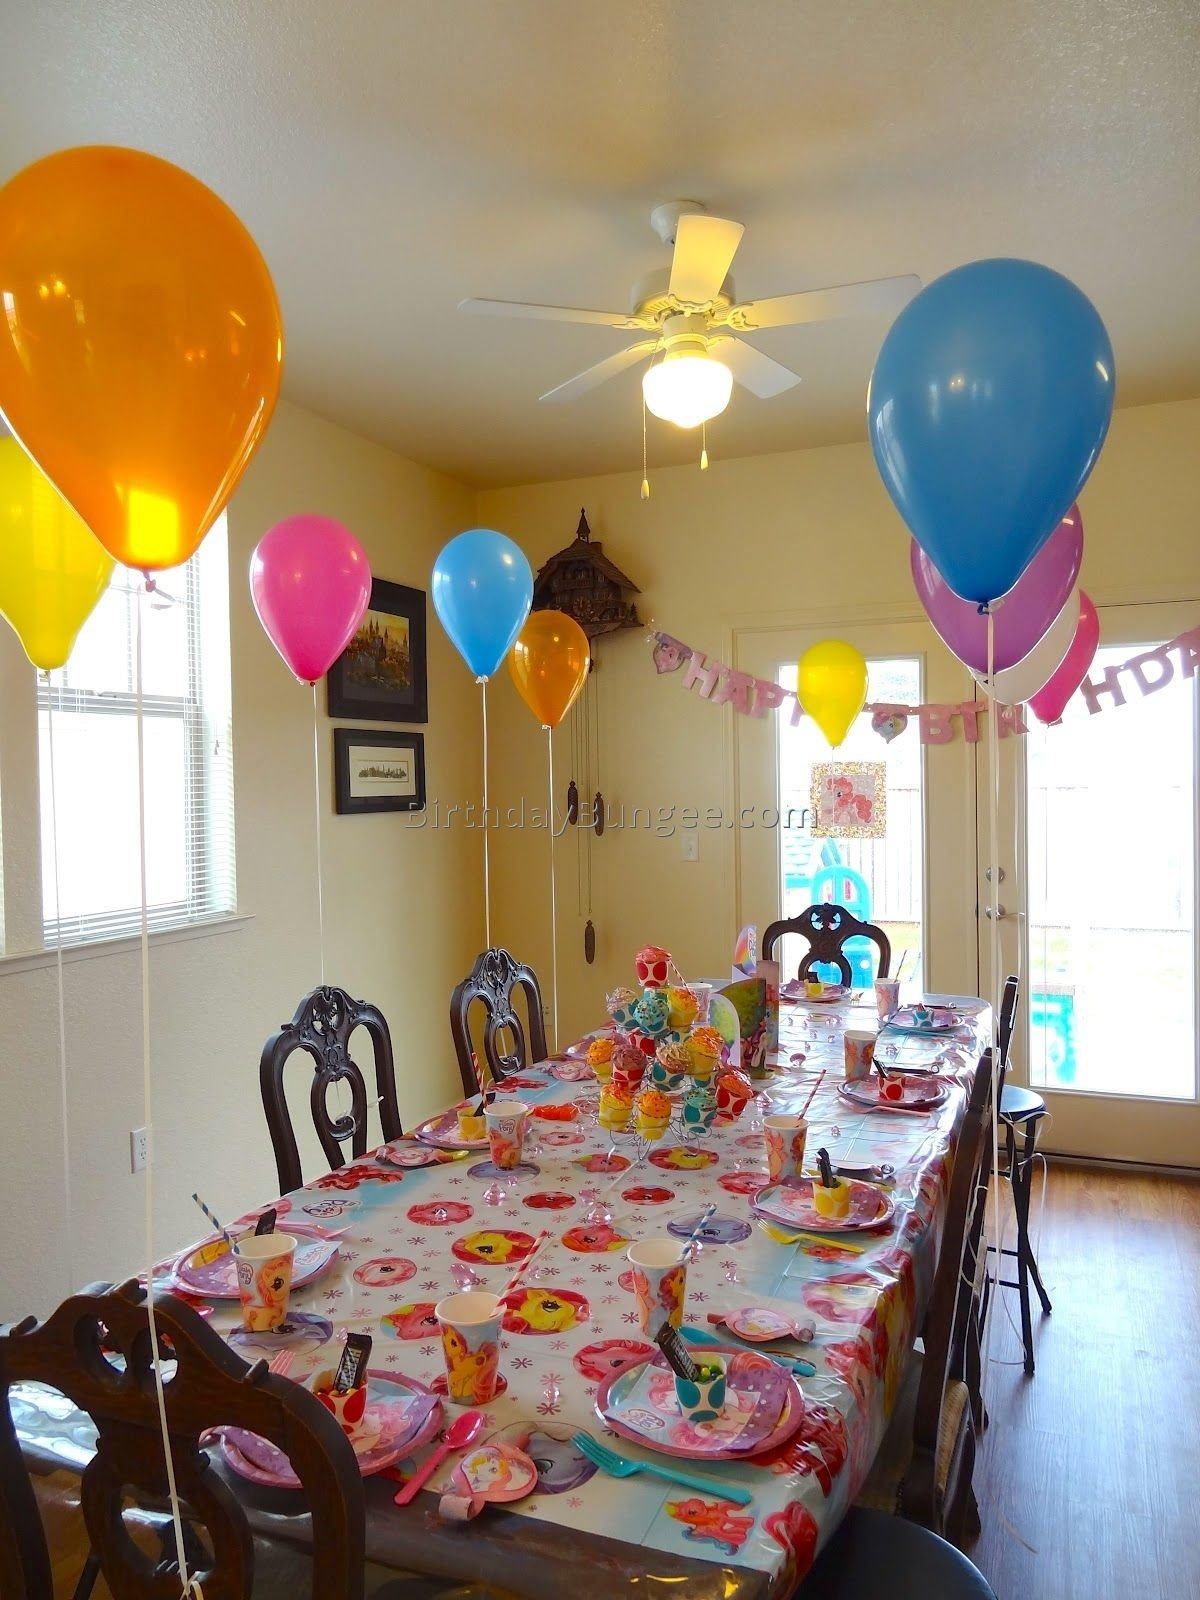 10 Trendy 7 Year Old Girl Birthday Party Ideas Themes Game For A